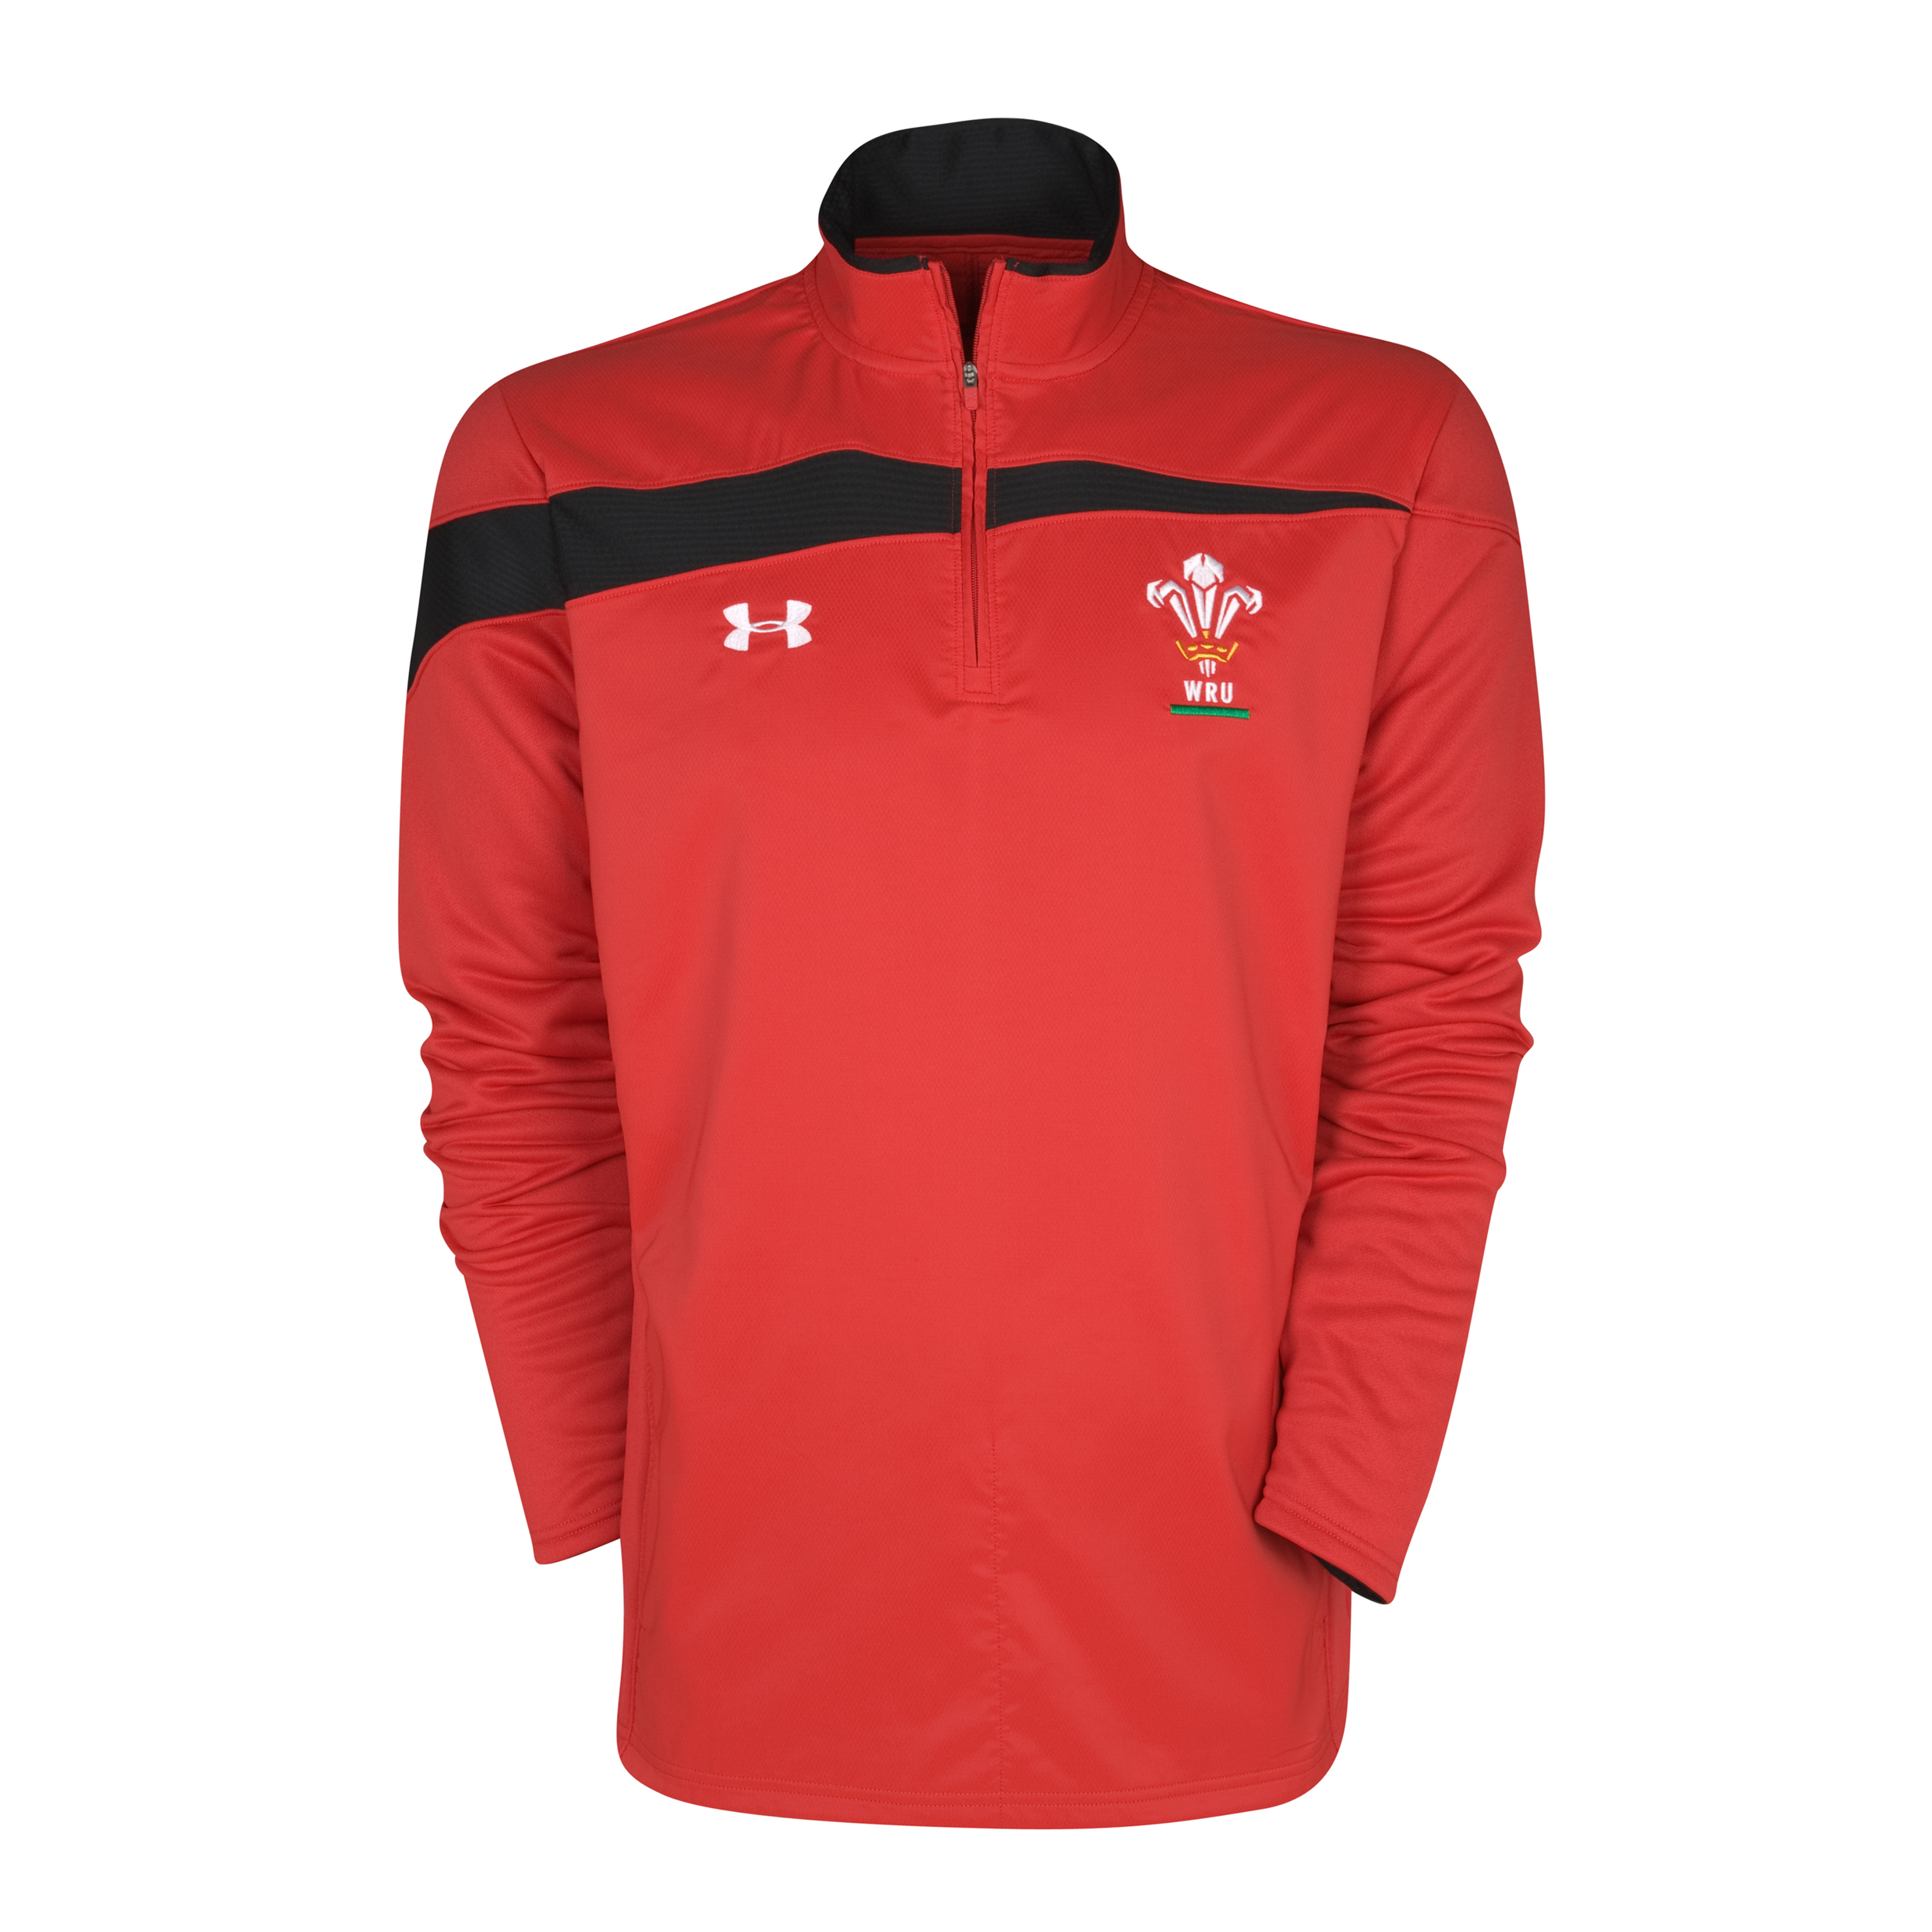 Wales Rugby Union 10k Force 1/4 Zip Top - Red/Black